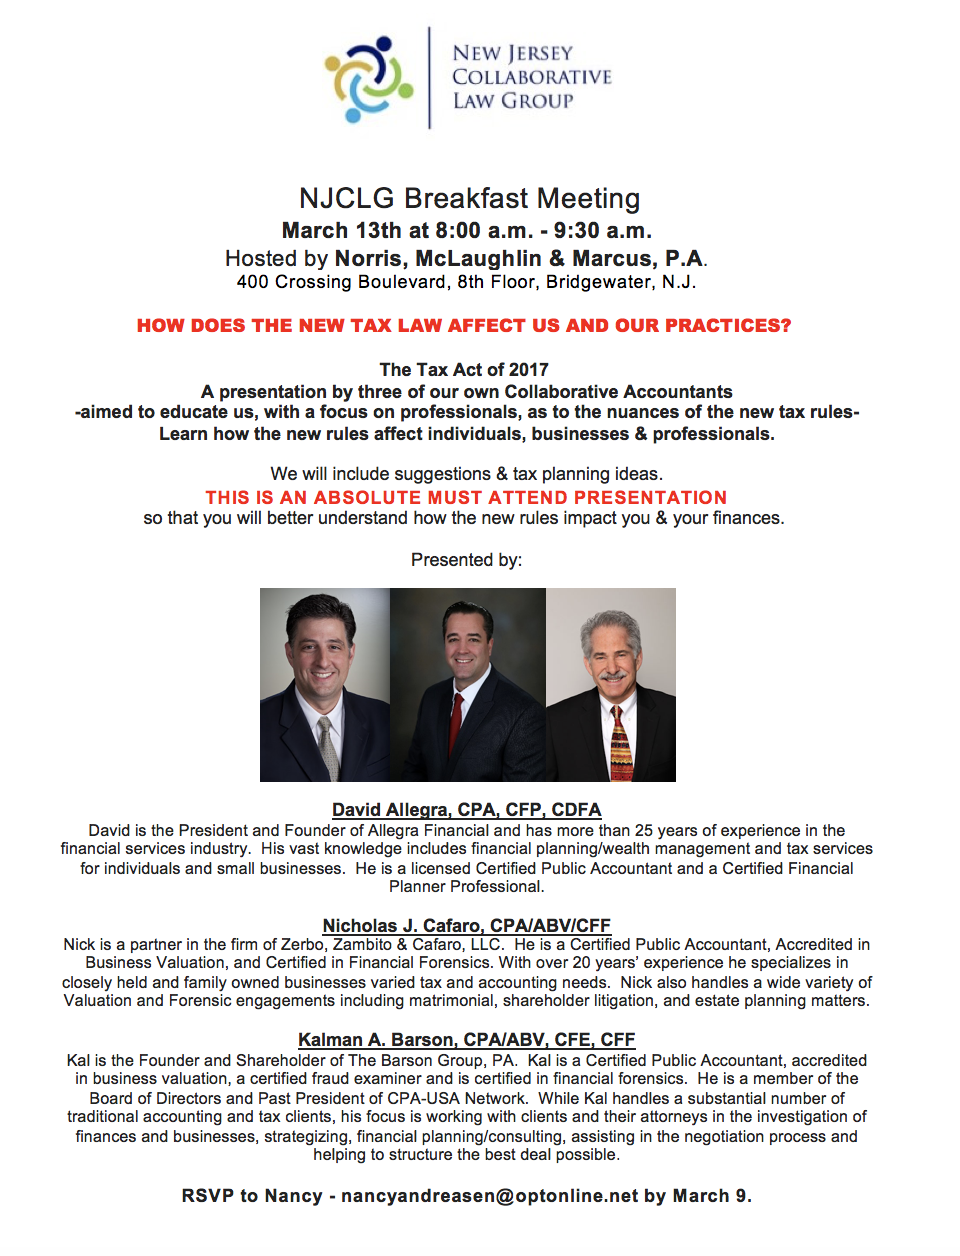 JanuaryBreakfastFlyer_NJCLG.png